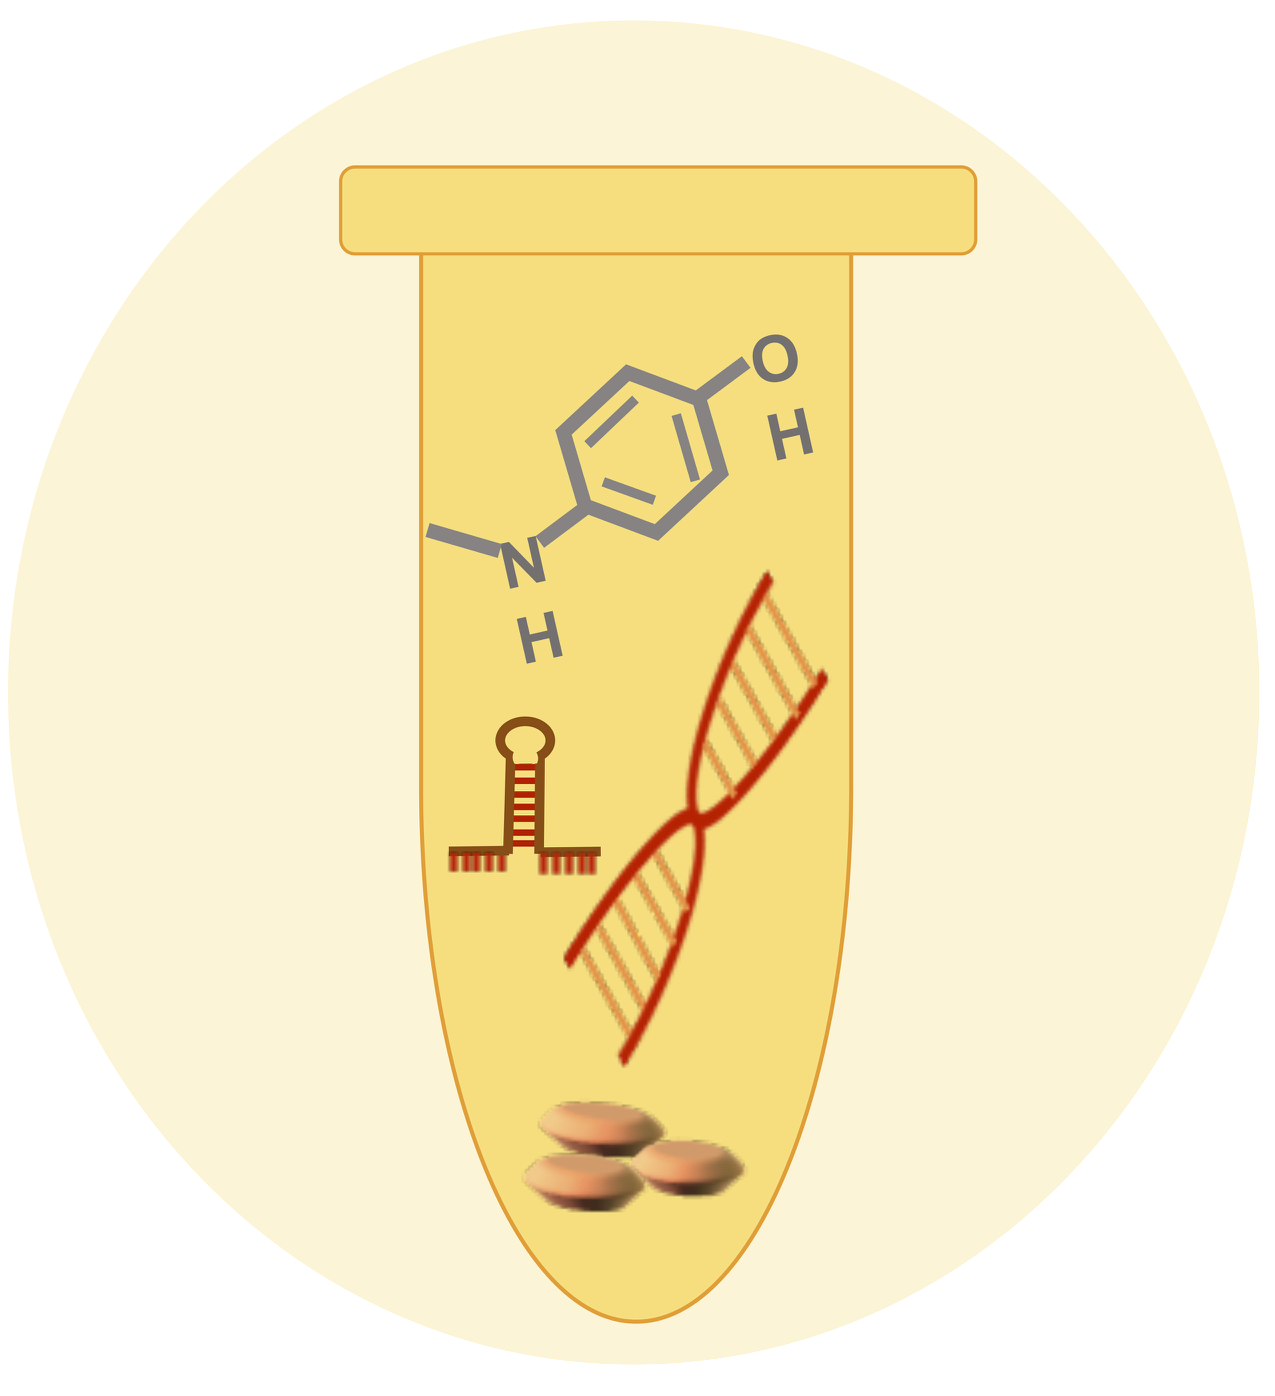 Link to available Reagents